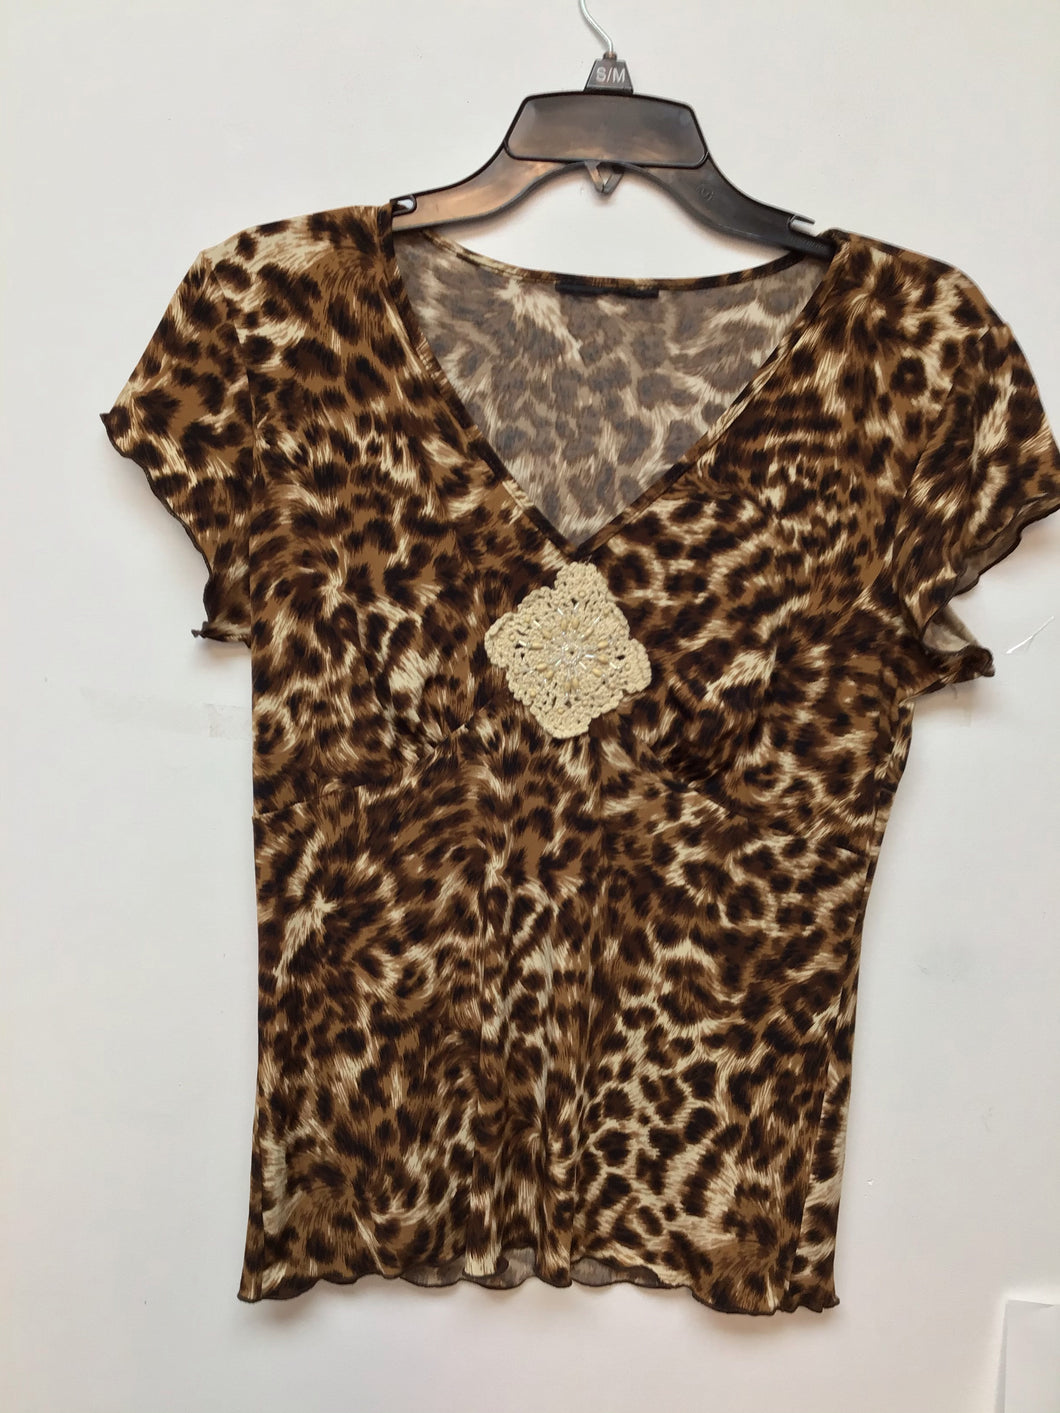 Unbranded leopard print top size medium